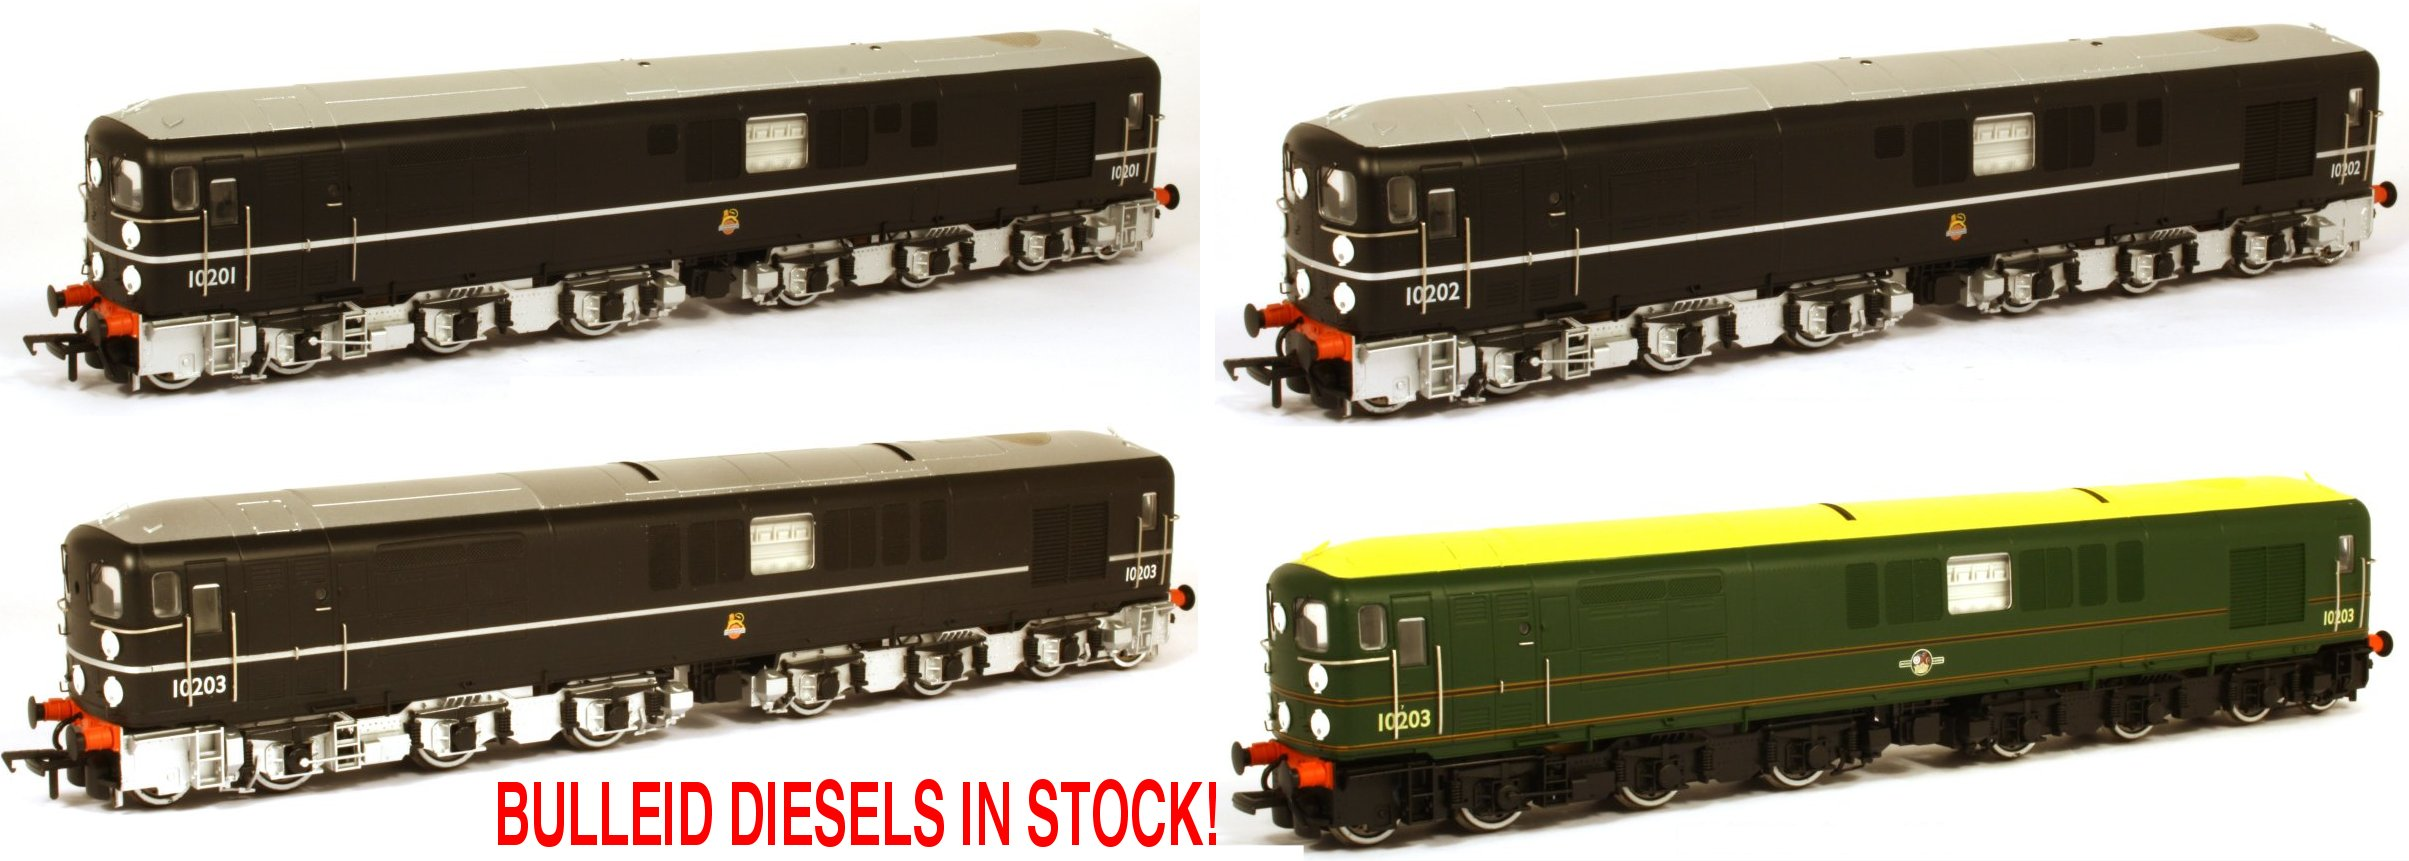 Bulleid Exclusive Models Image